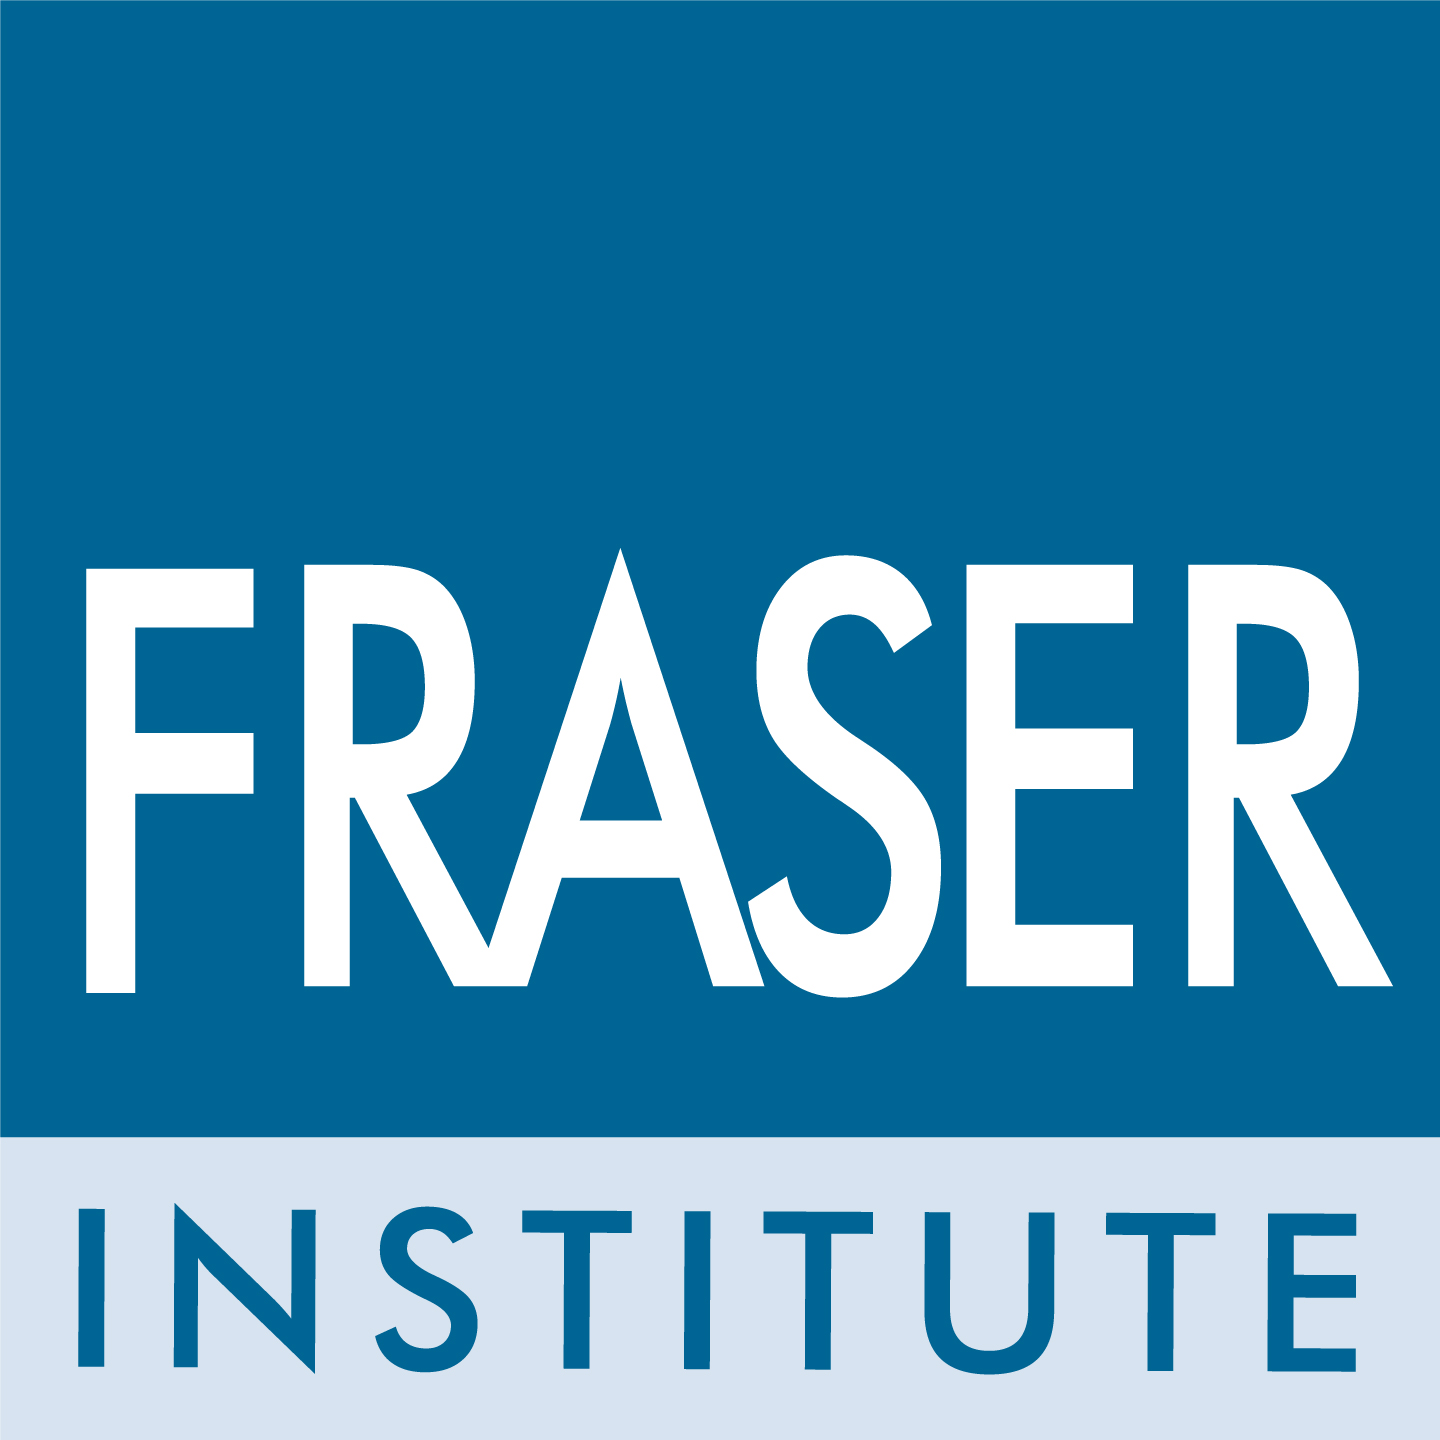 Fraser Institute News Release: Nevada tops global mining survey rankings, Venezuela ranks last